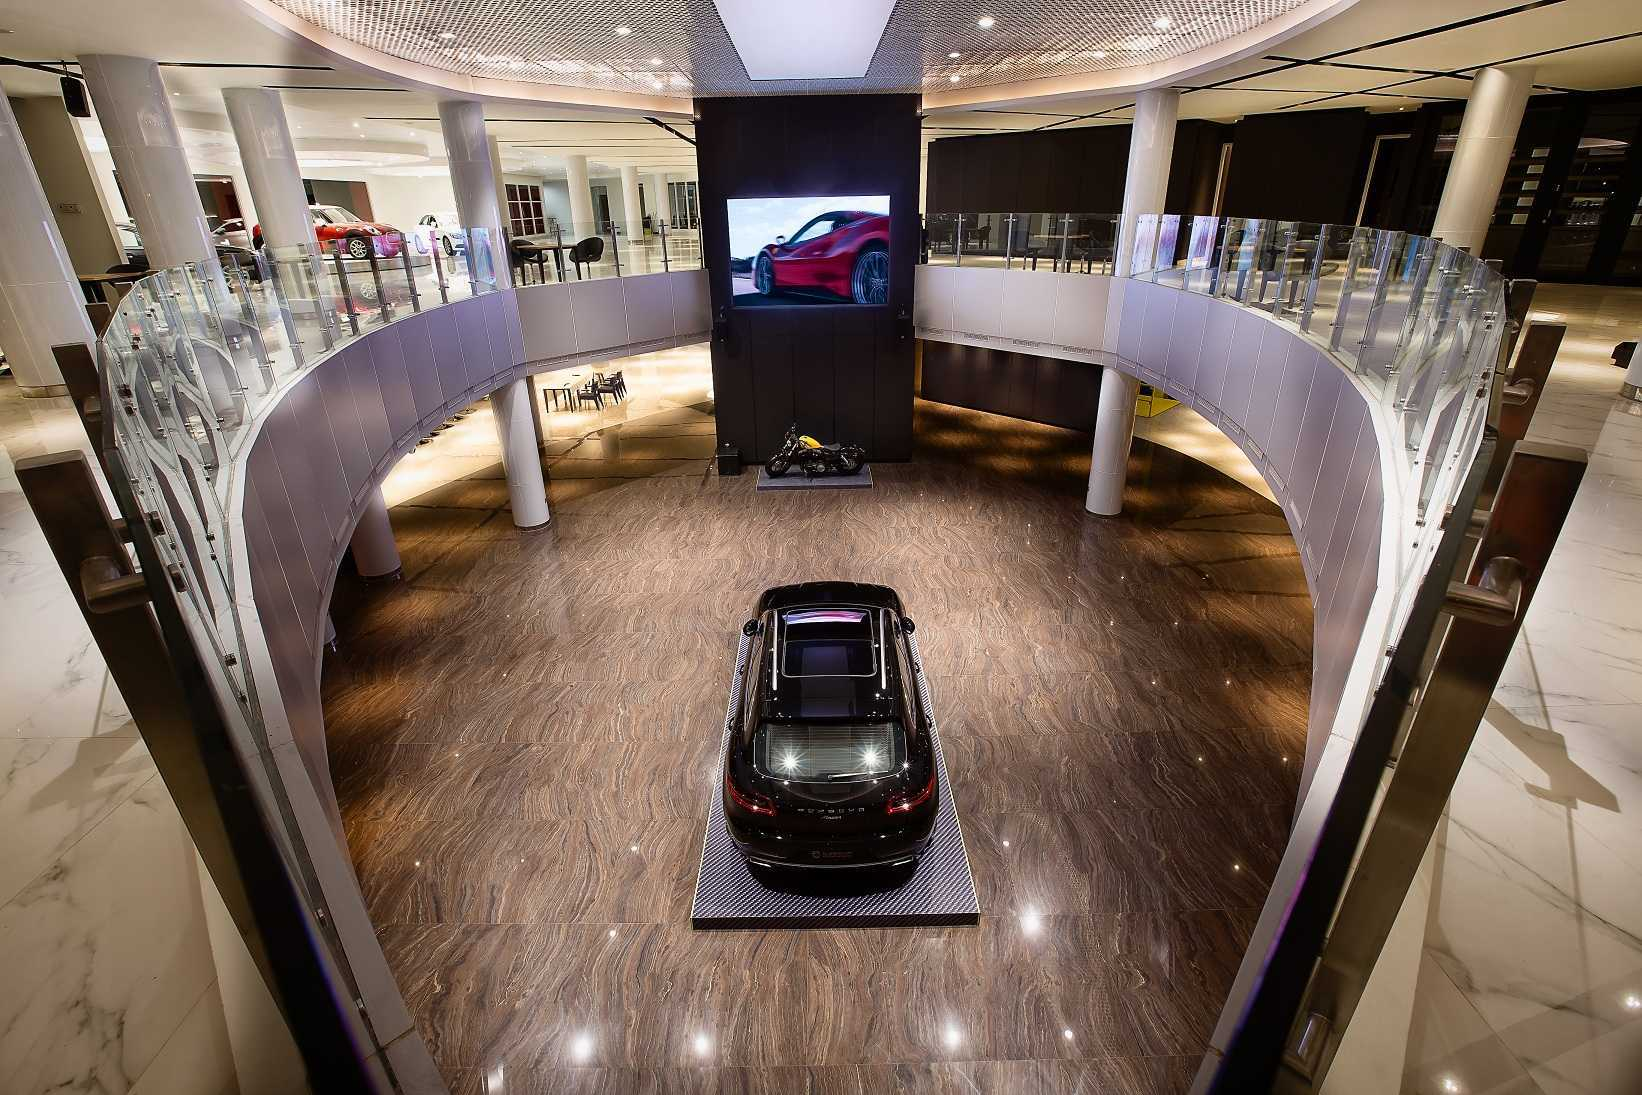 Aqustica The Pitstop Sportscar Showroom Palembang, Indonesia Palembang, Indonesia Pitstop-Interior-By-Lconcept-Photography-08978803888-5-Resize   29612